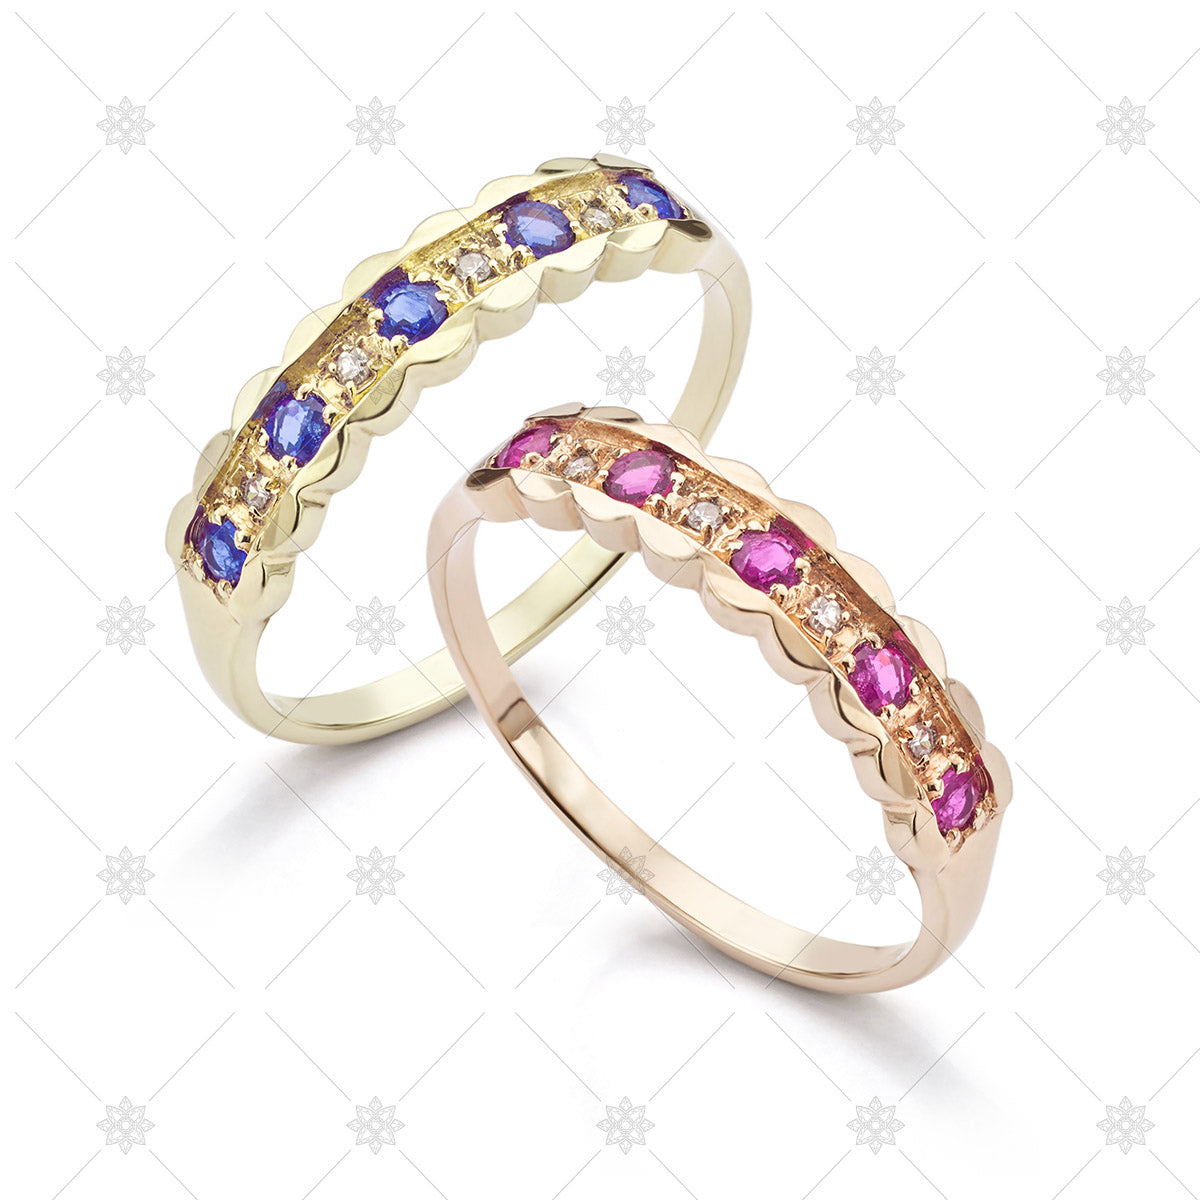 Pink and Blue Sapphire rings image